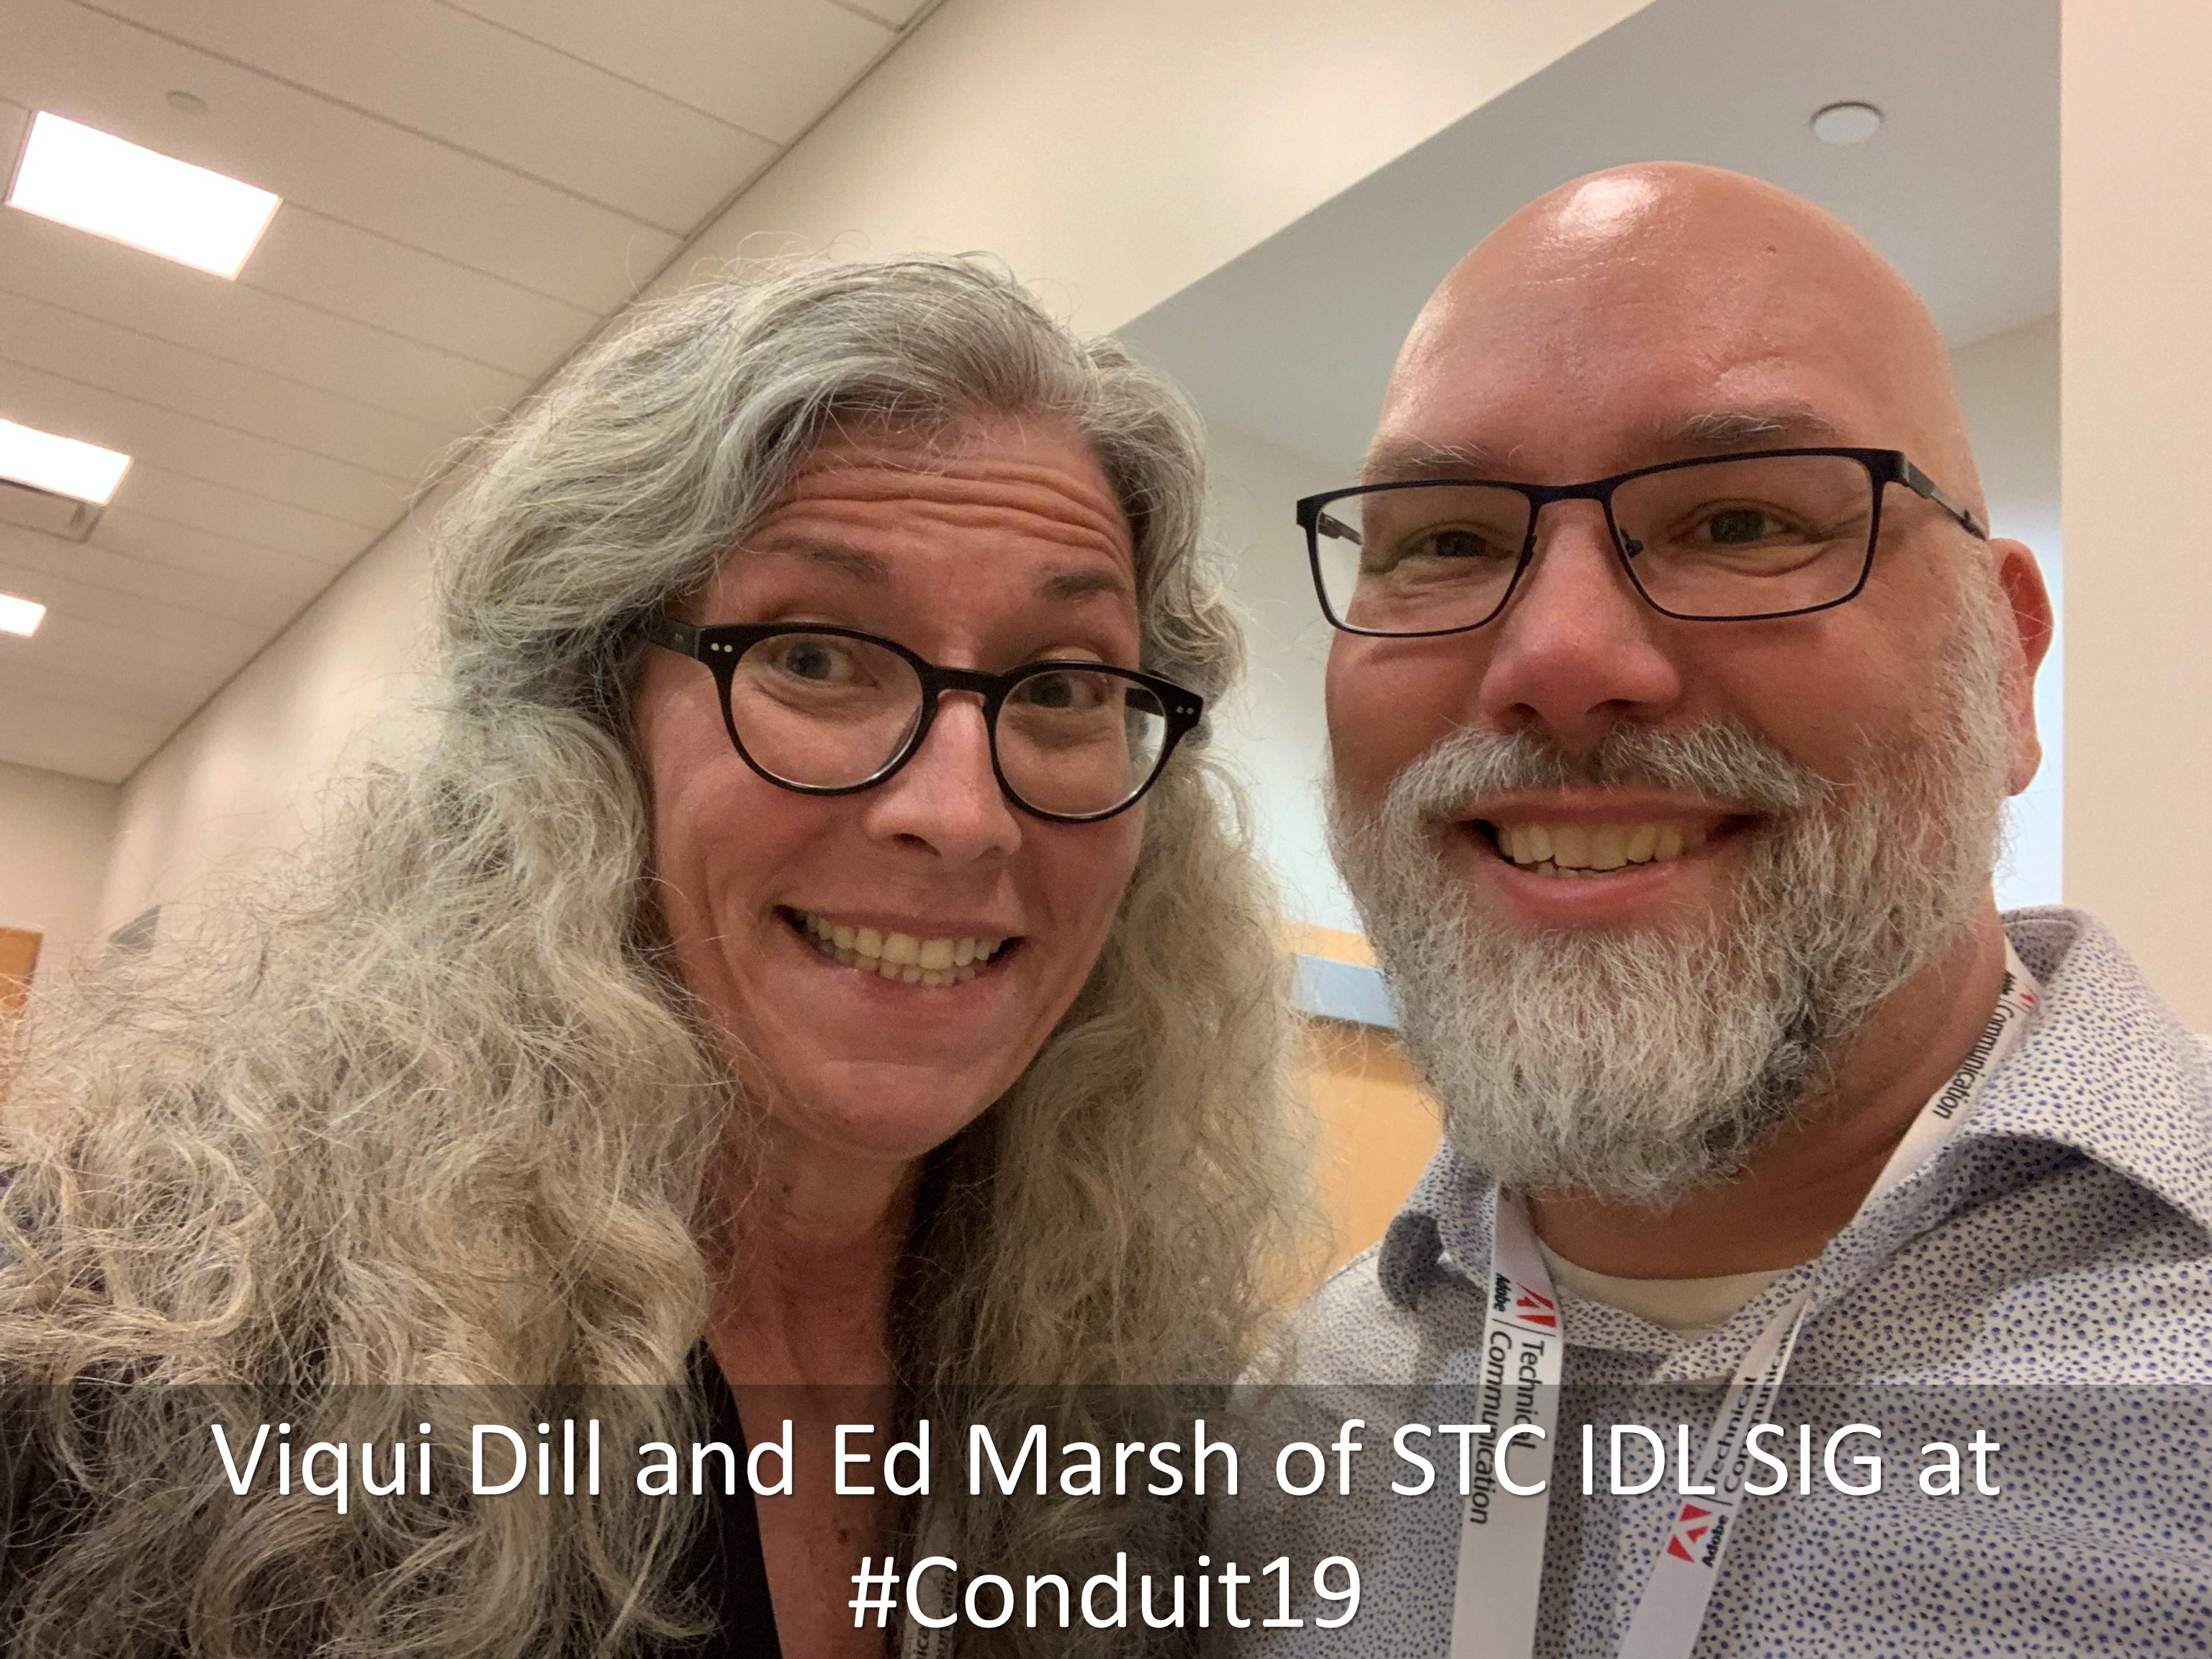 20 Viqui Dill and Ed Marsh of STC IDL SIG at Conduit19